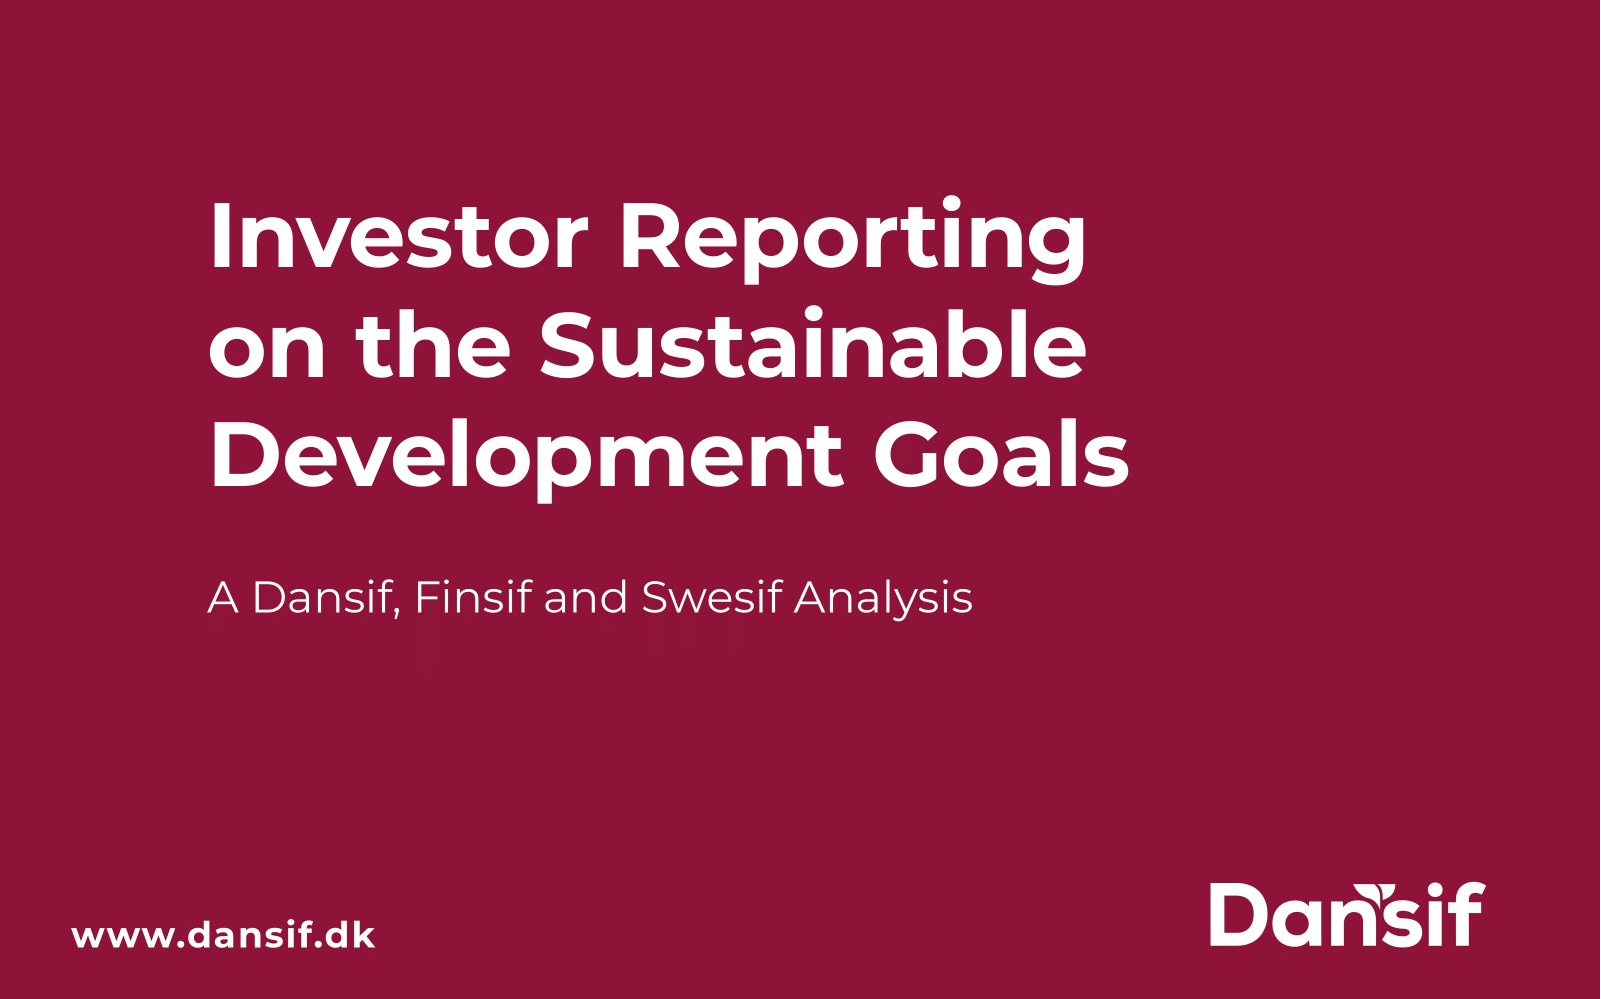 Investor Reporting on the Sustainable Development Goals